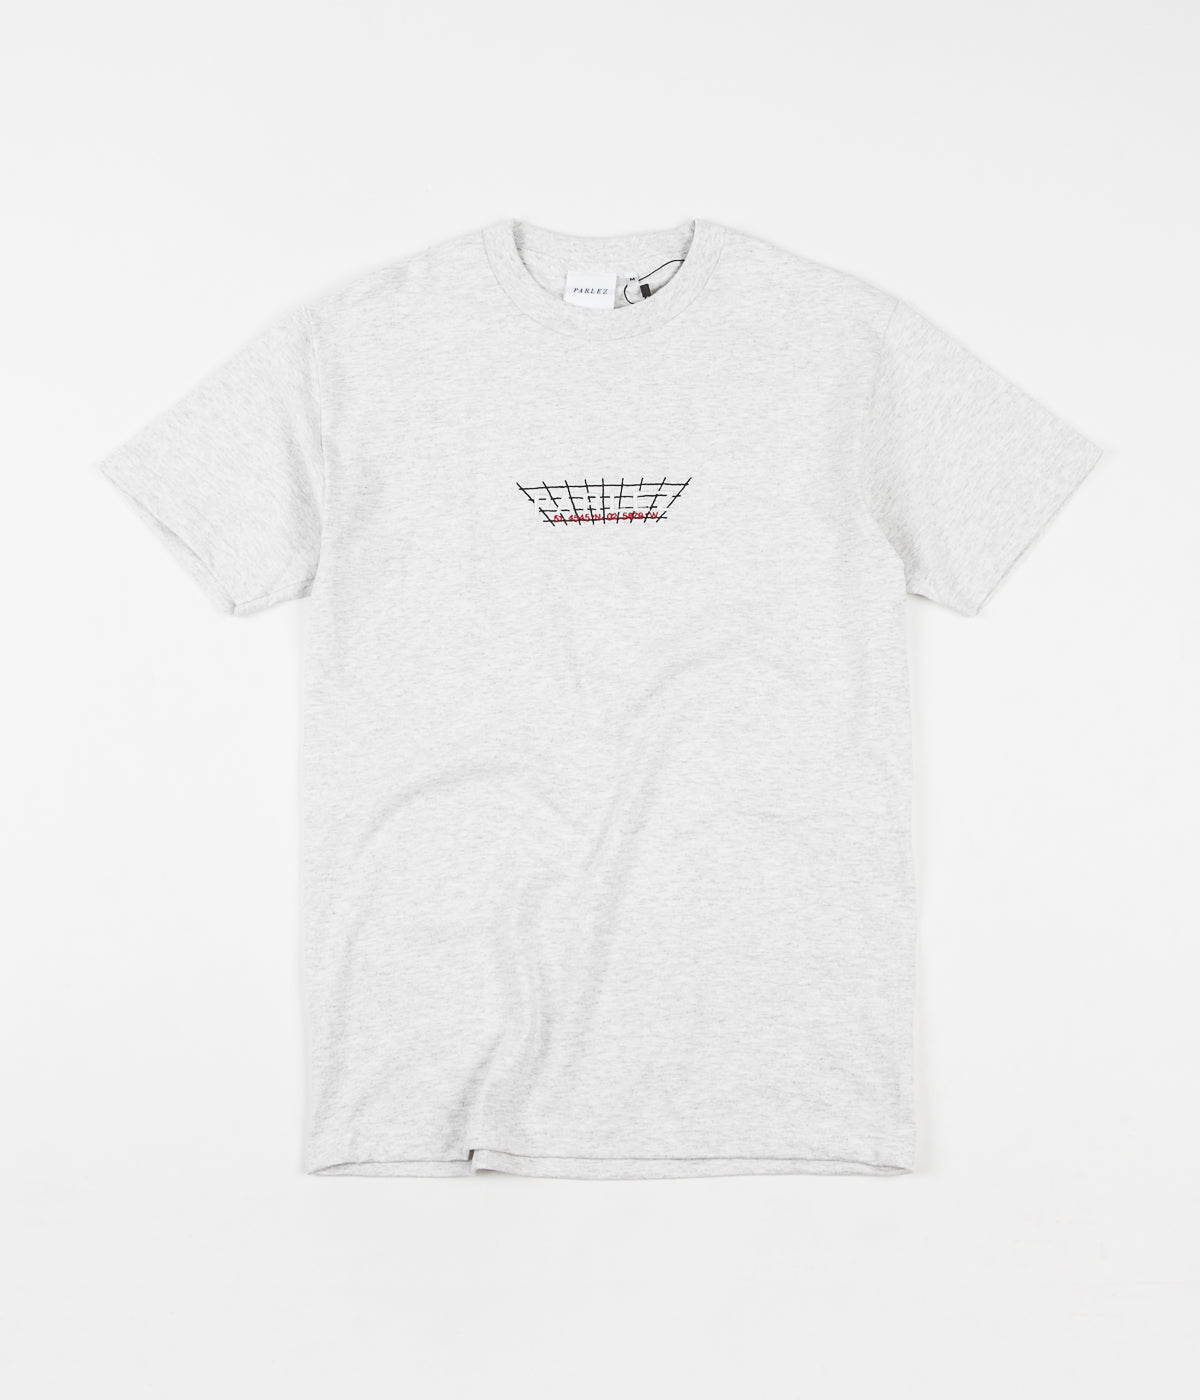 Parlez Byers T-Shirt - Heather